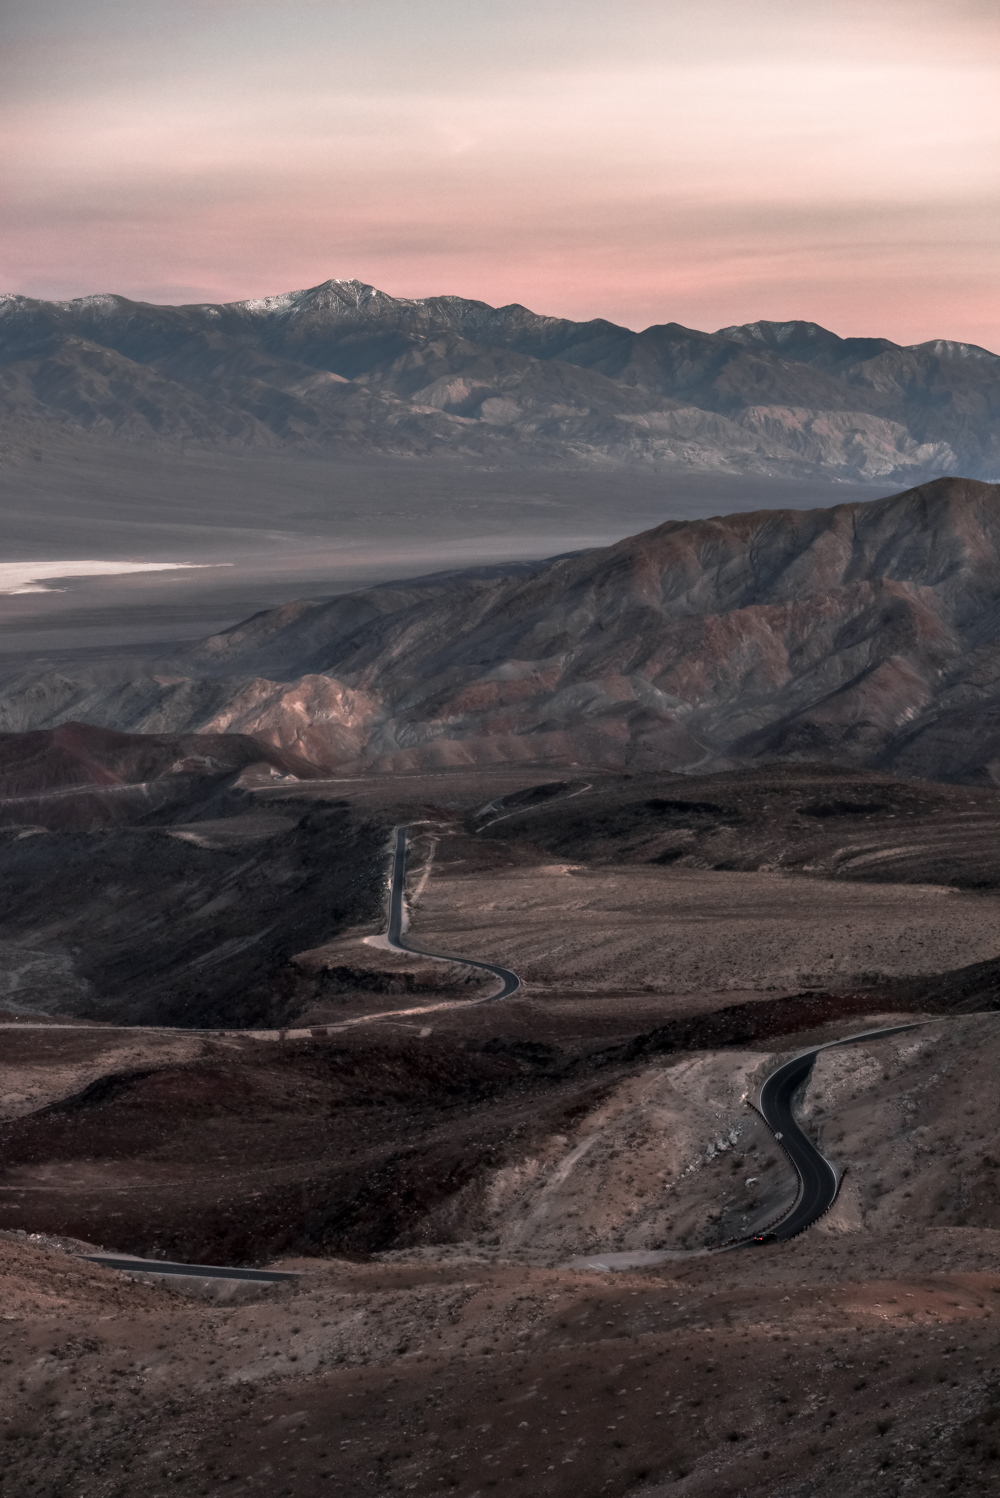 blog-usa-road-trip-ouest-zion-death-valley-fire-17